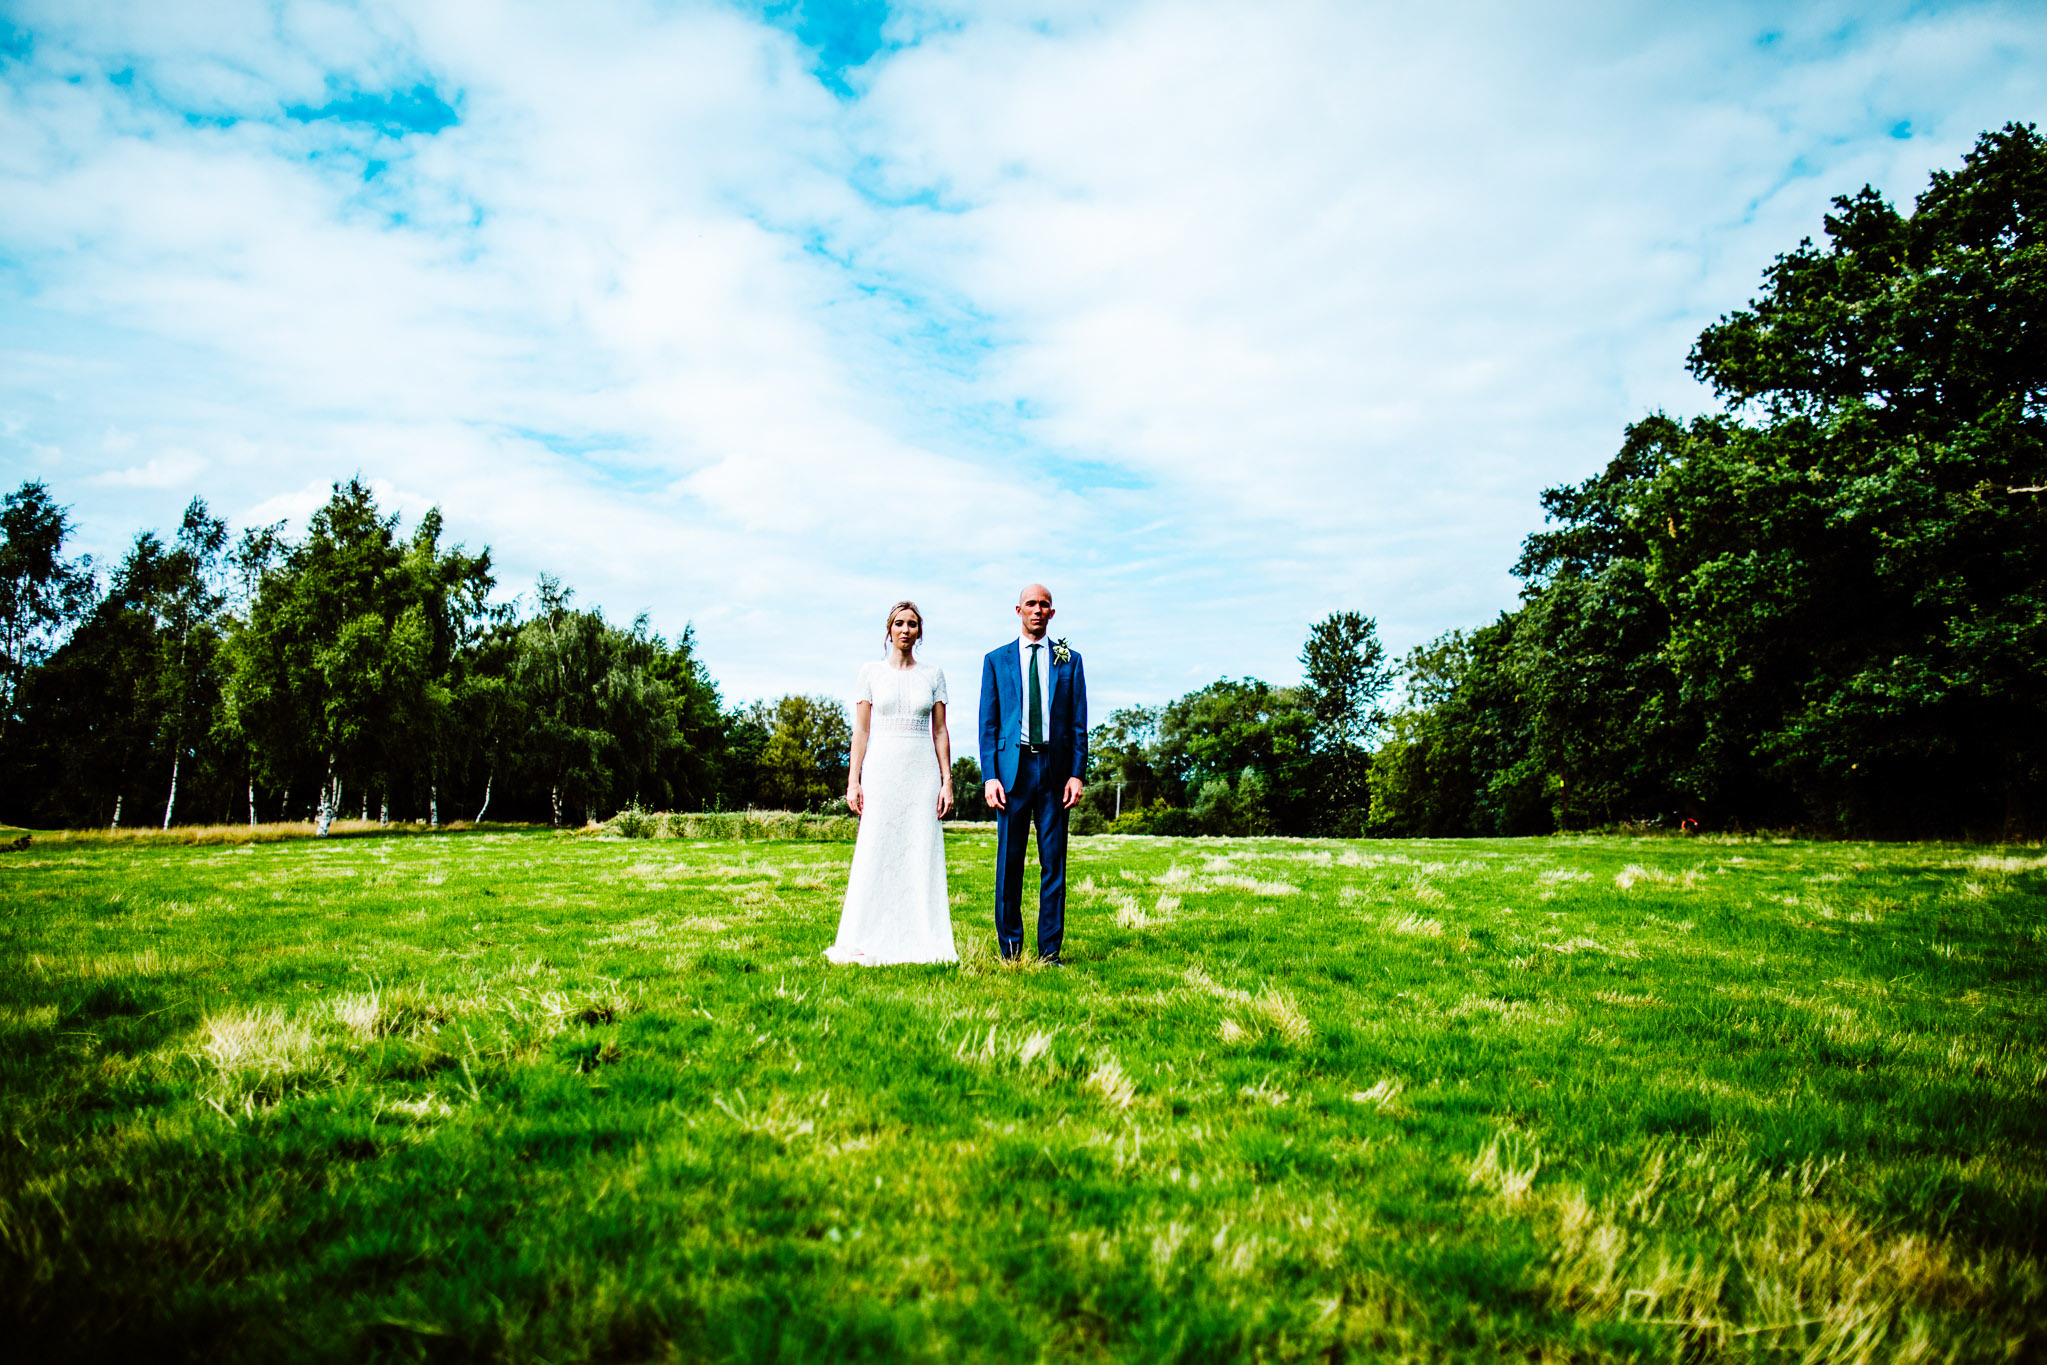 Oak Tree Peover Wedding - Cheshire - A+R